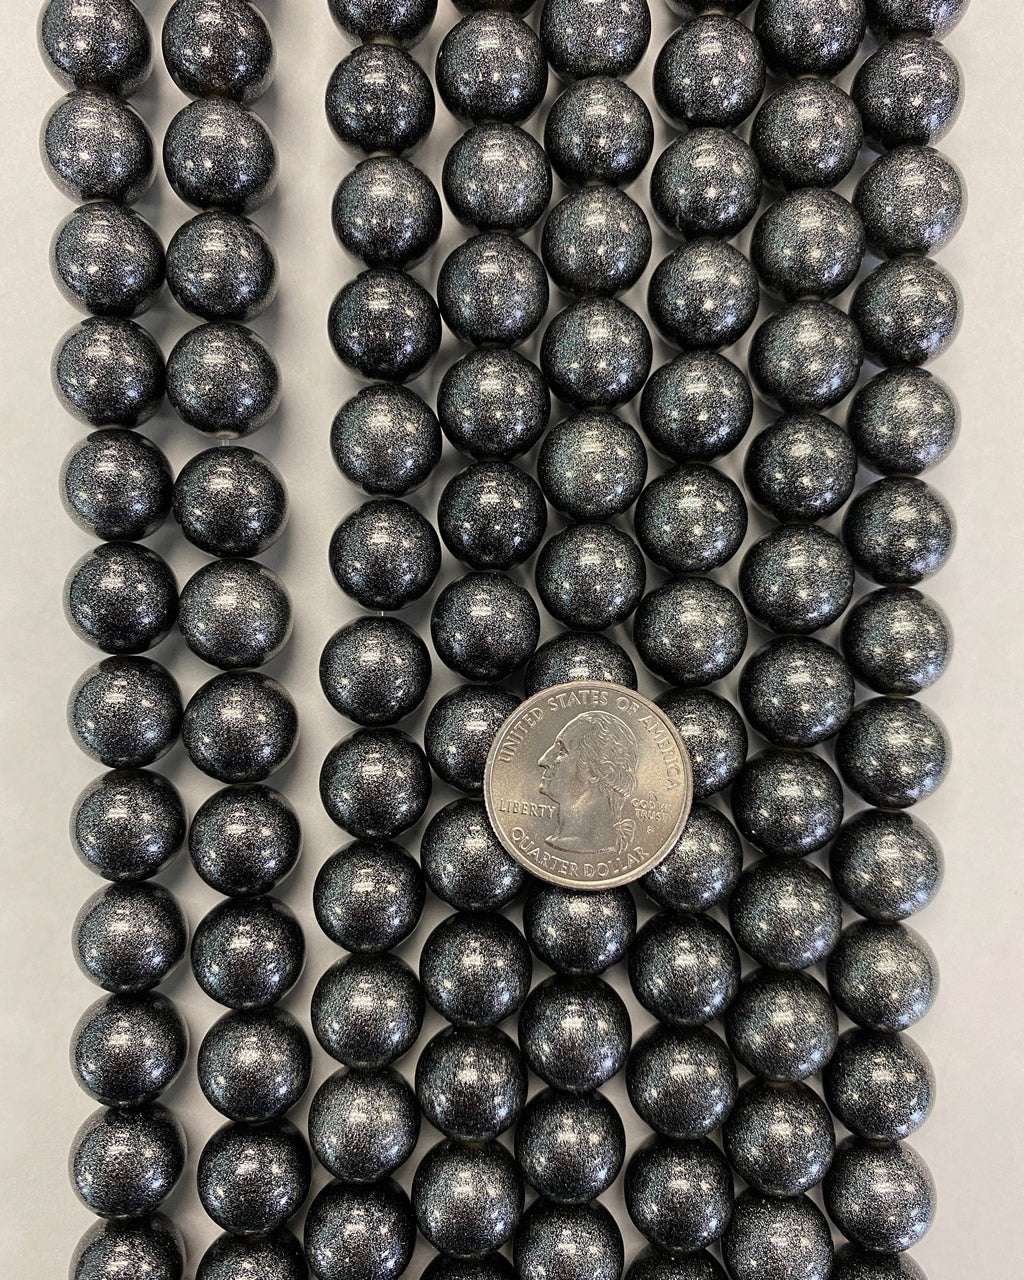 13mm round, painted glitter silver black, vintage lucite beads,  sold per 16